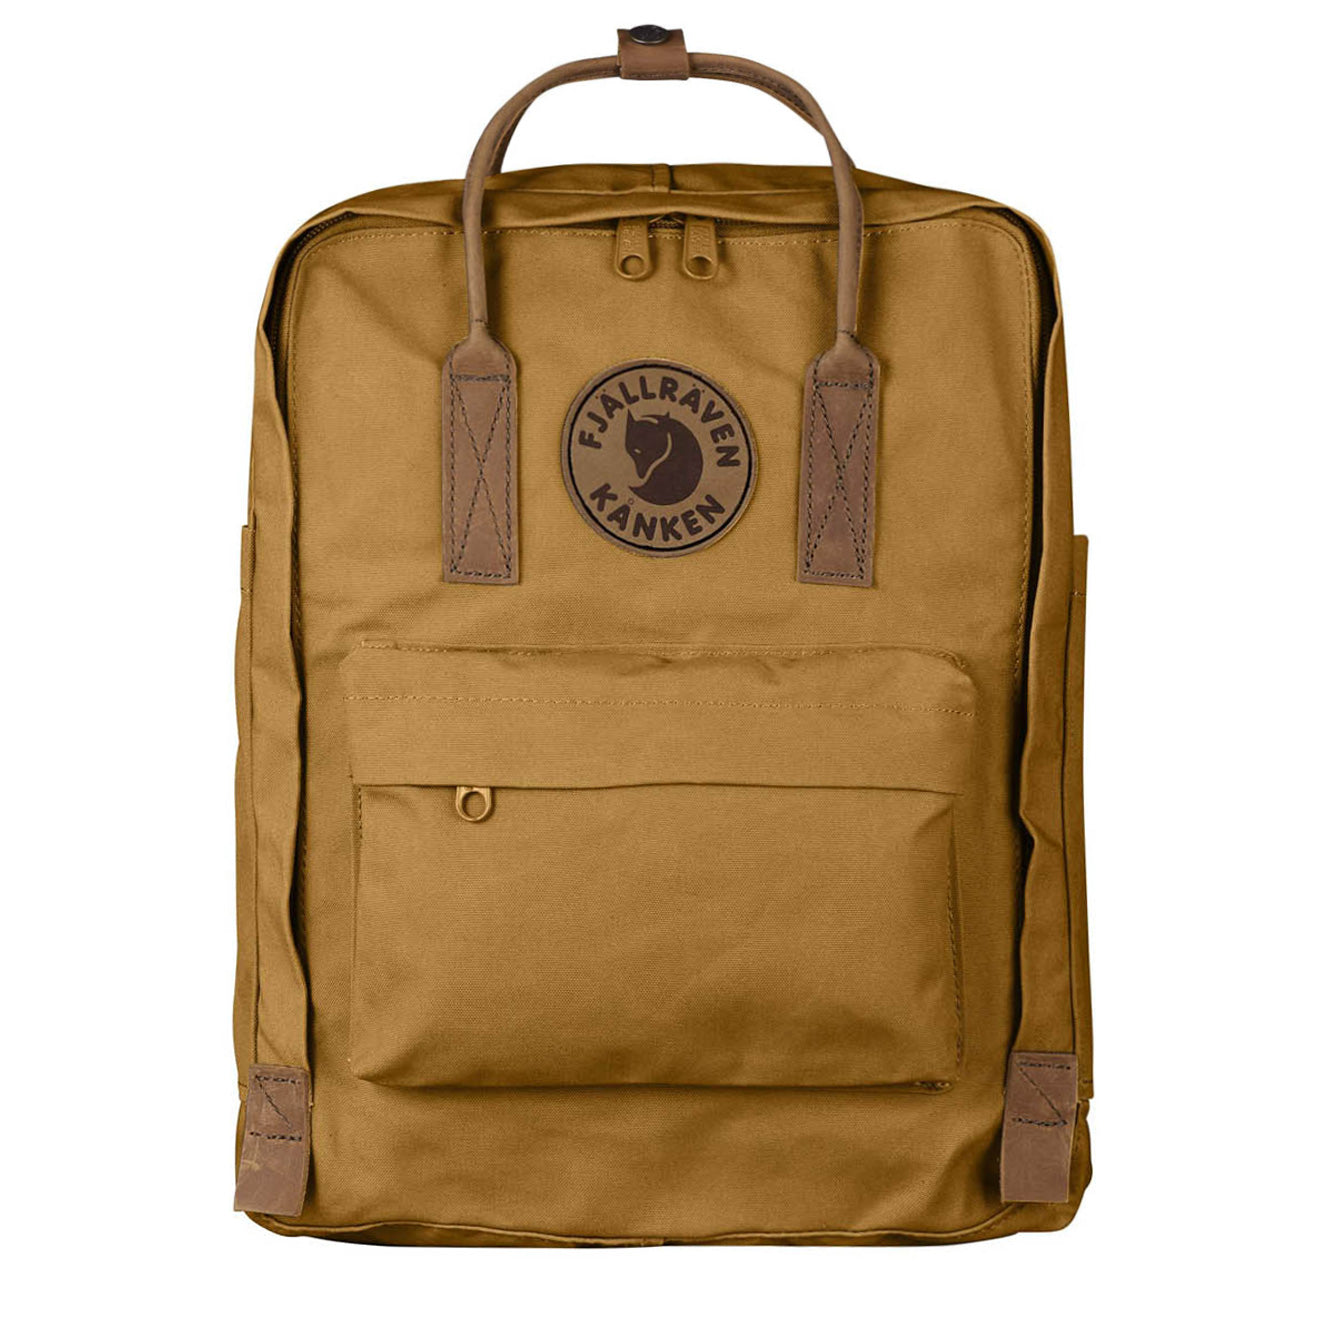 Fjallraven Kanken No.2 Acorn - My Kanken Bag